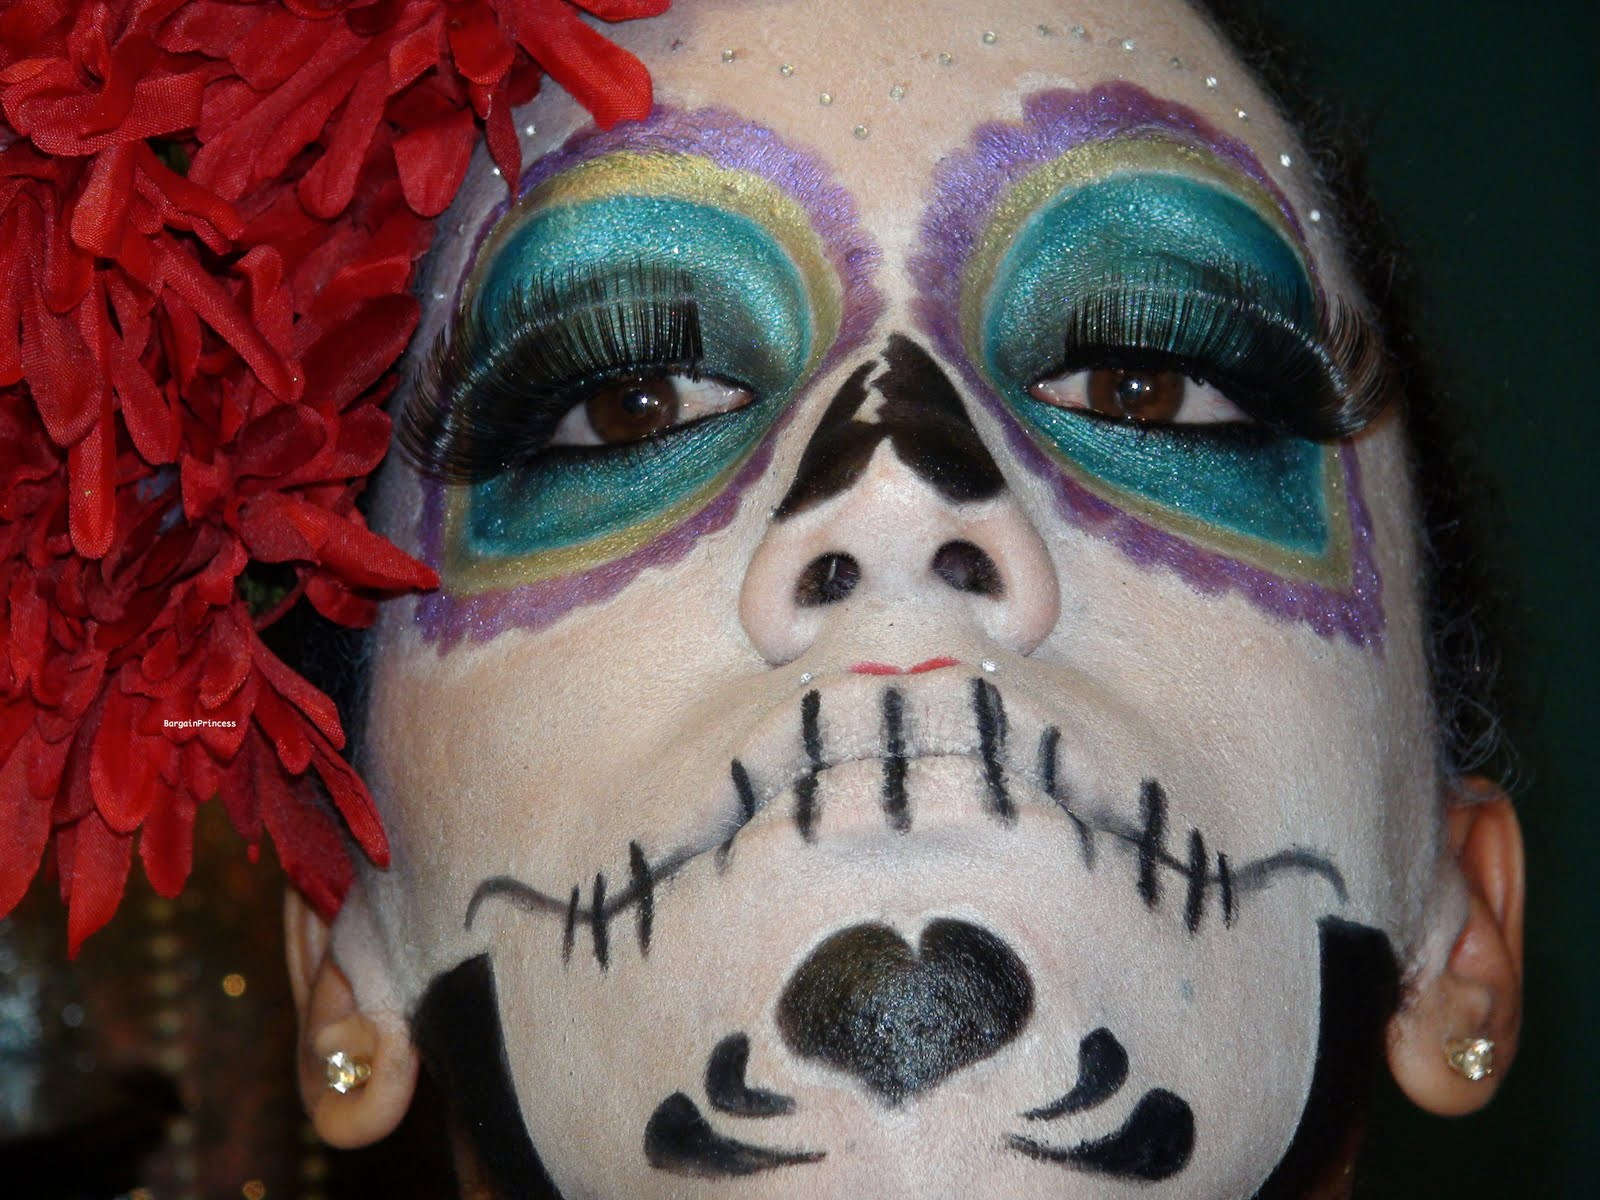 Candy skull makeup